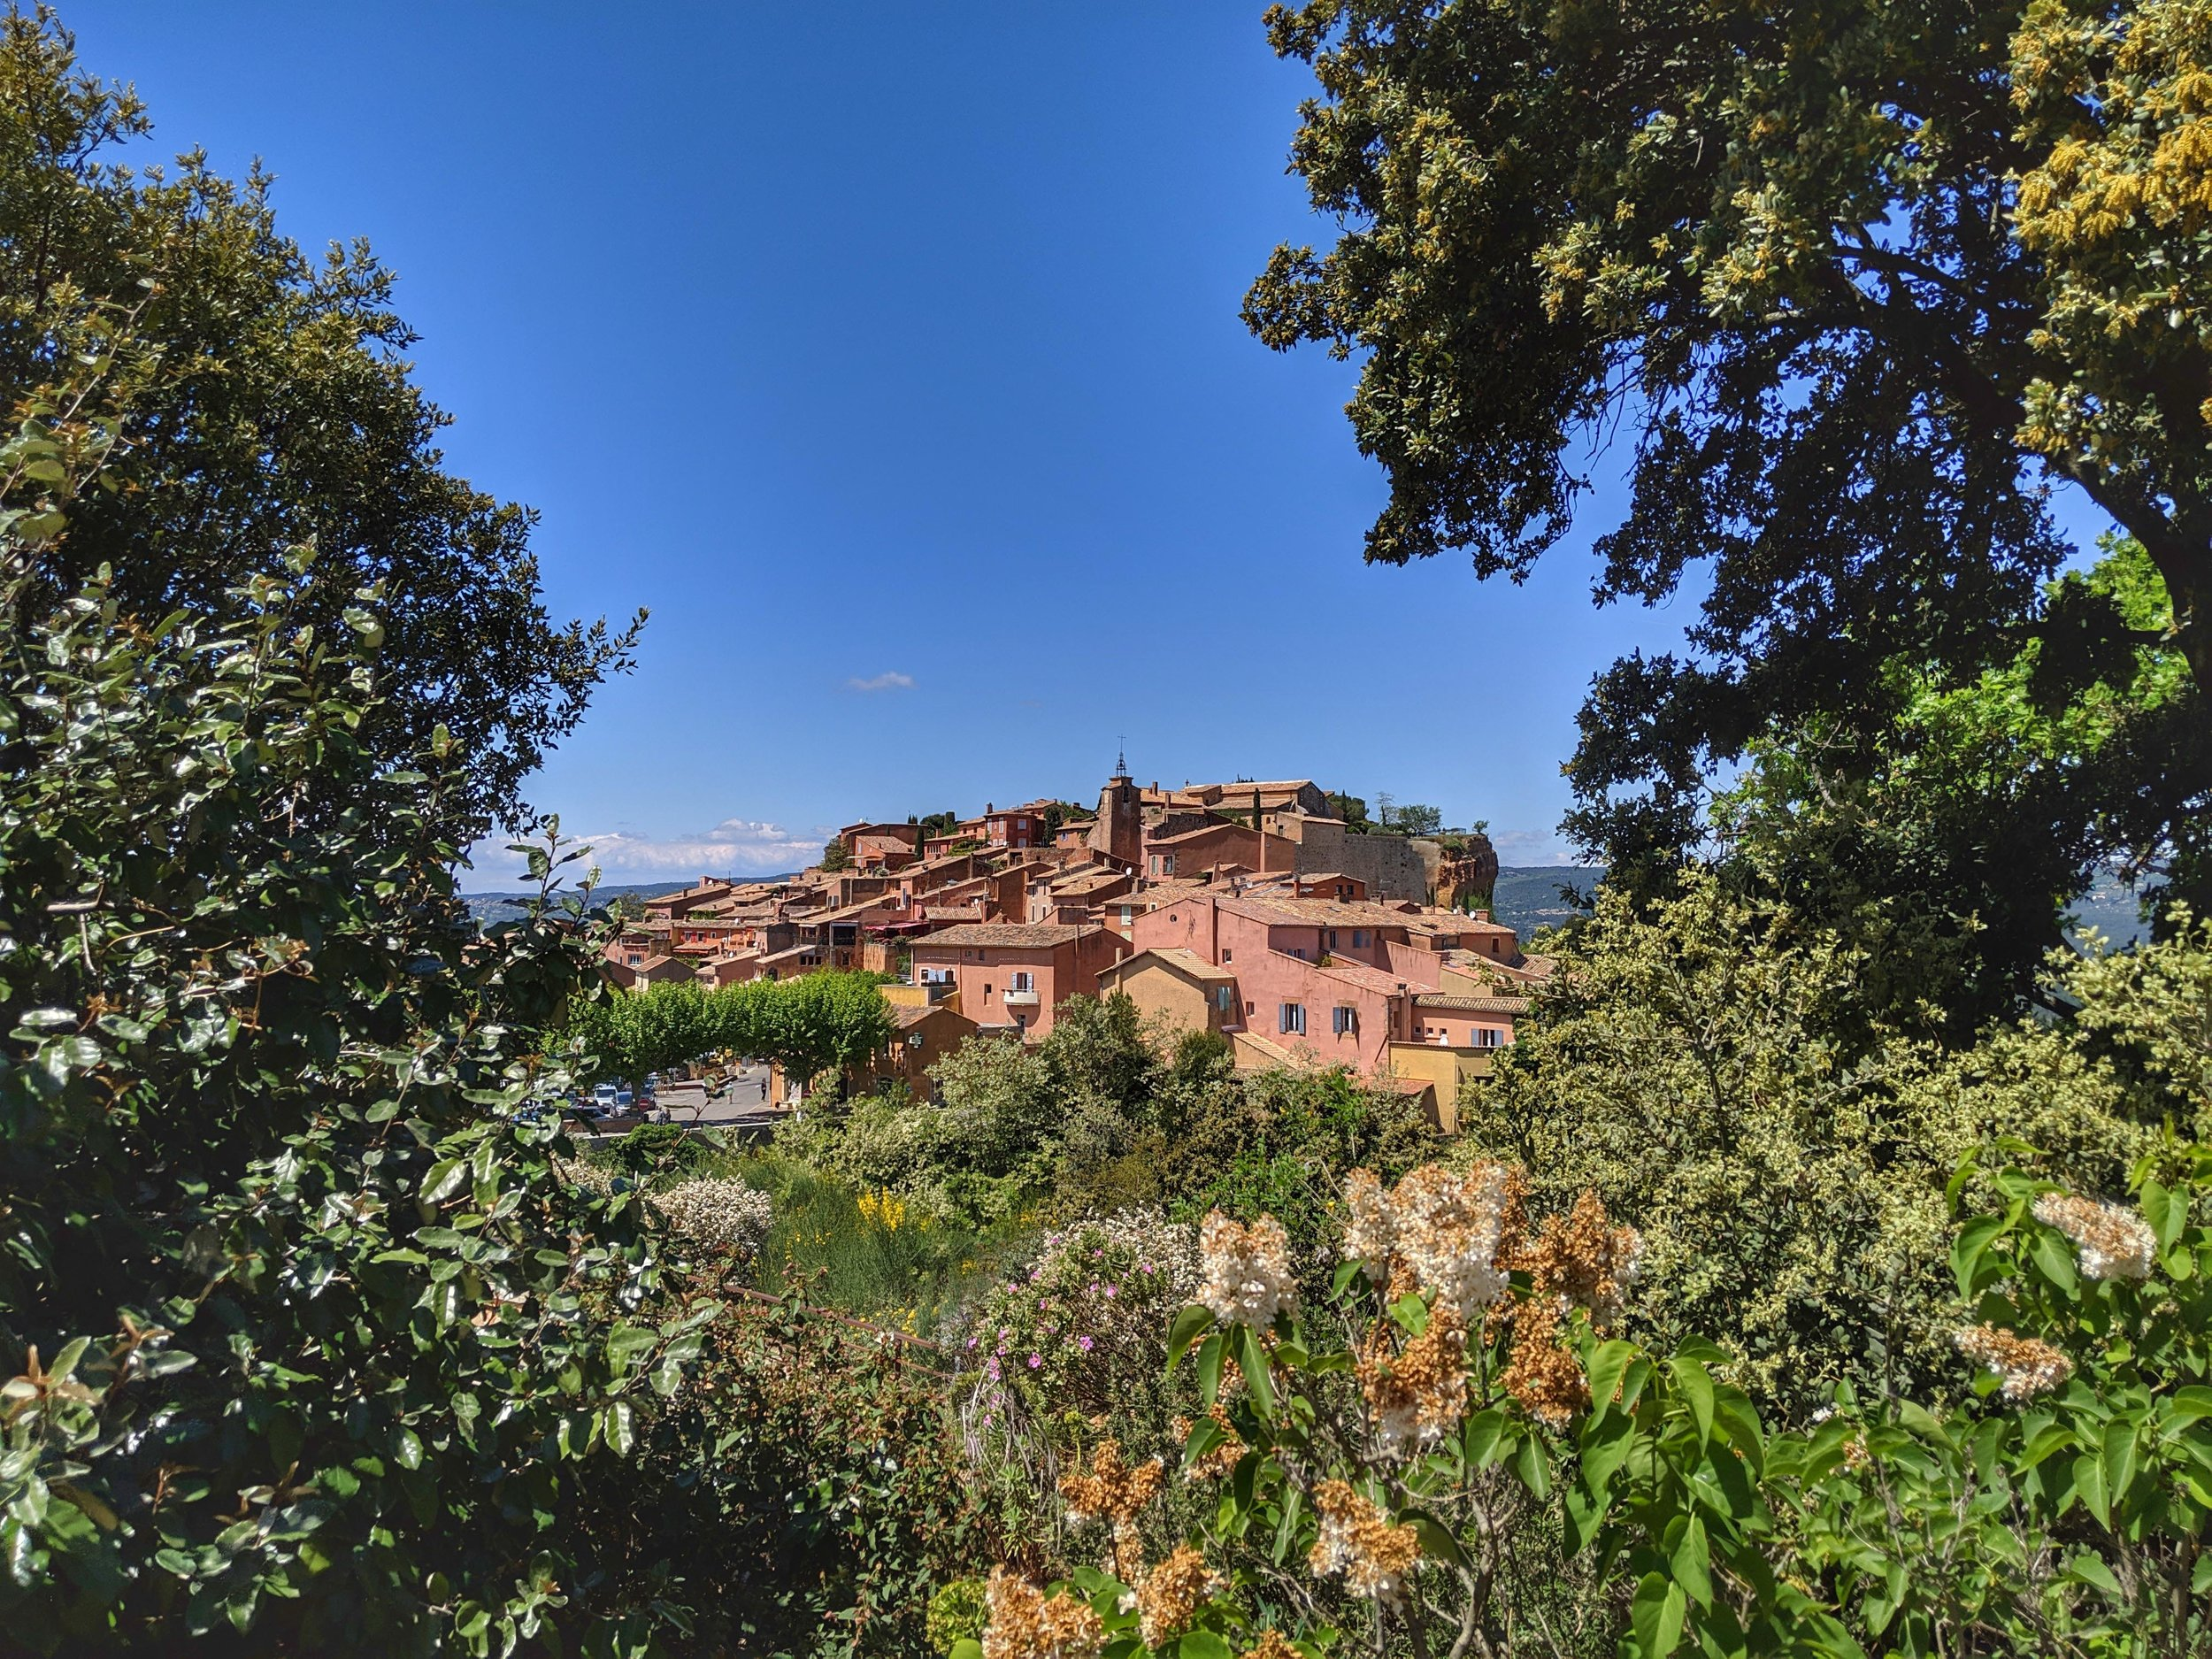 Roussillon, is distinct from the other Provence town.